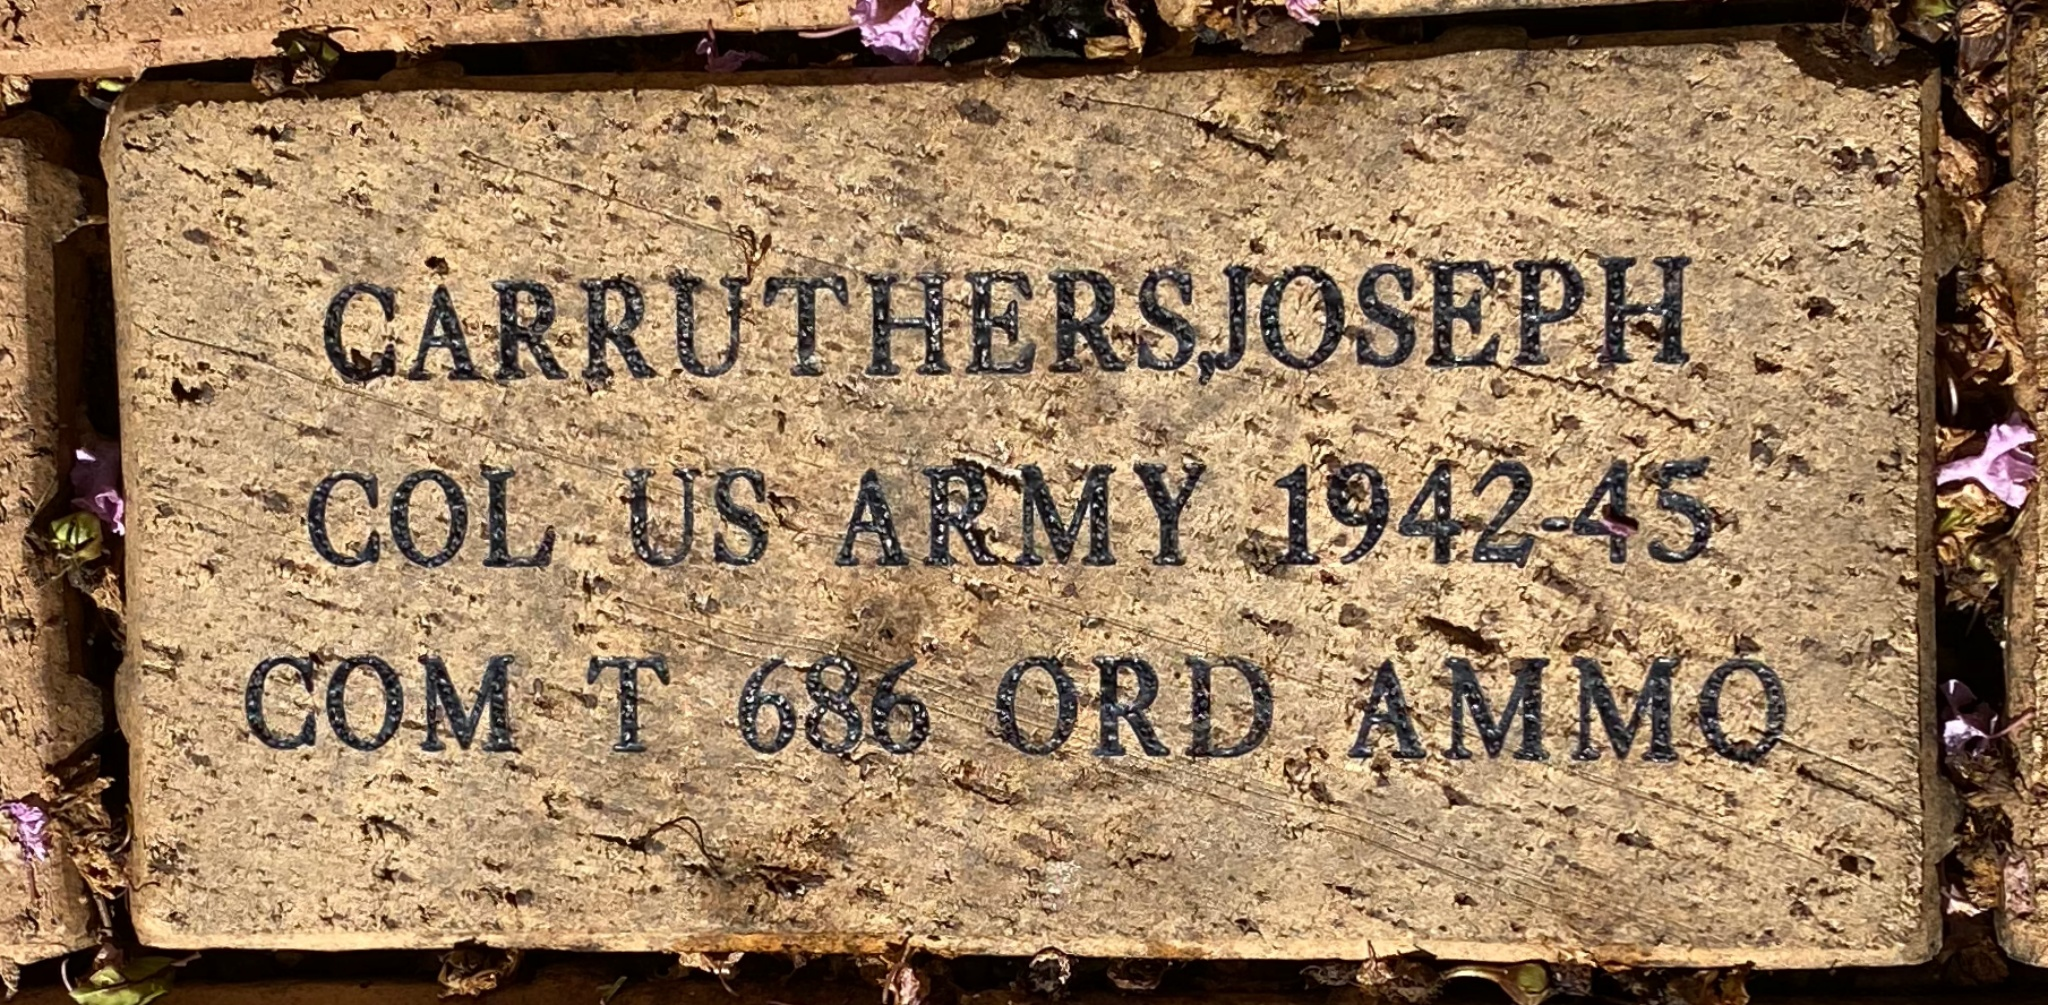 CARRUTHERS, JOSEPH COL US ARMY 1942-45 COM T 686 ORD AMMO